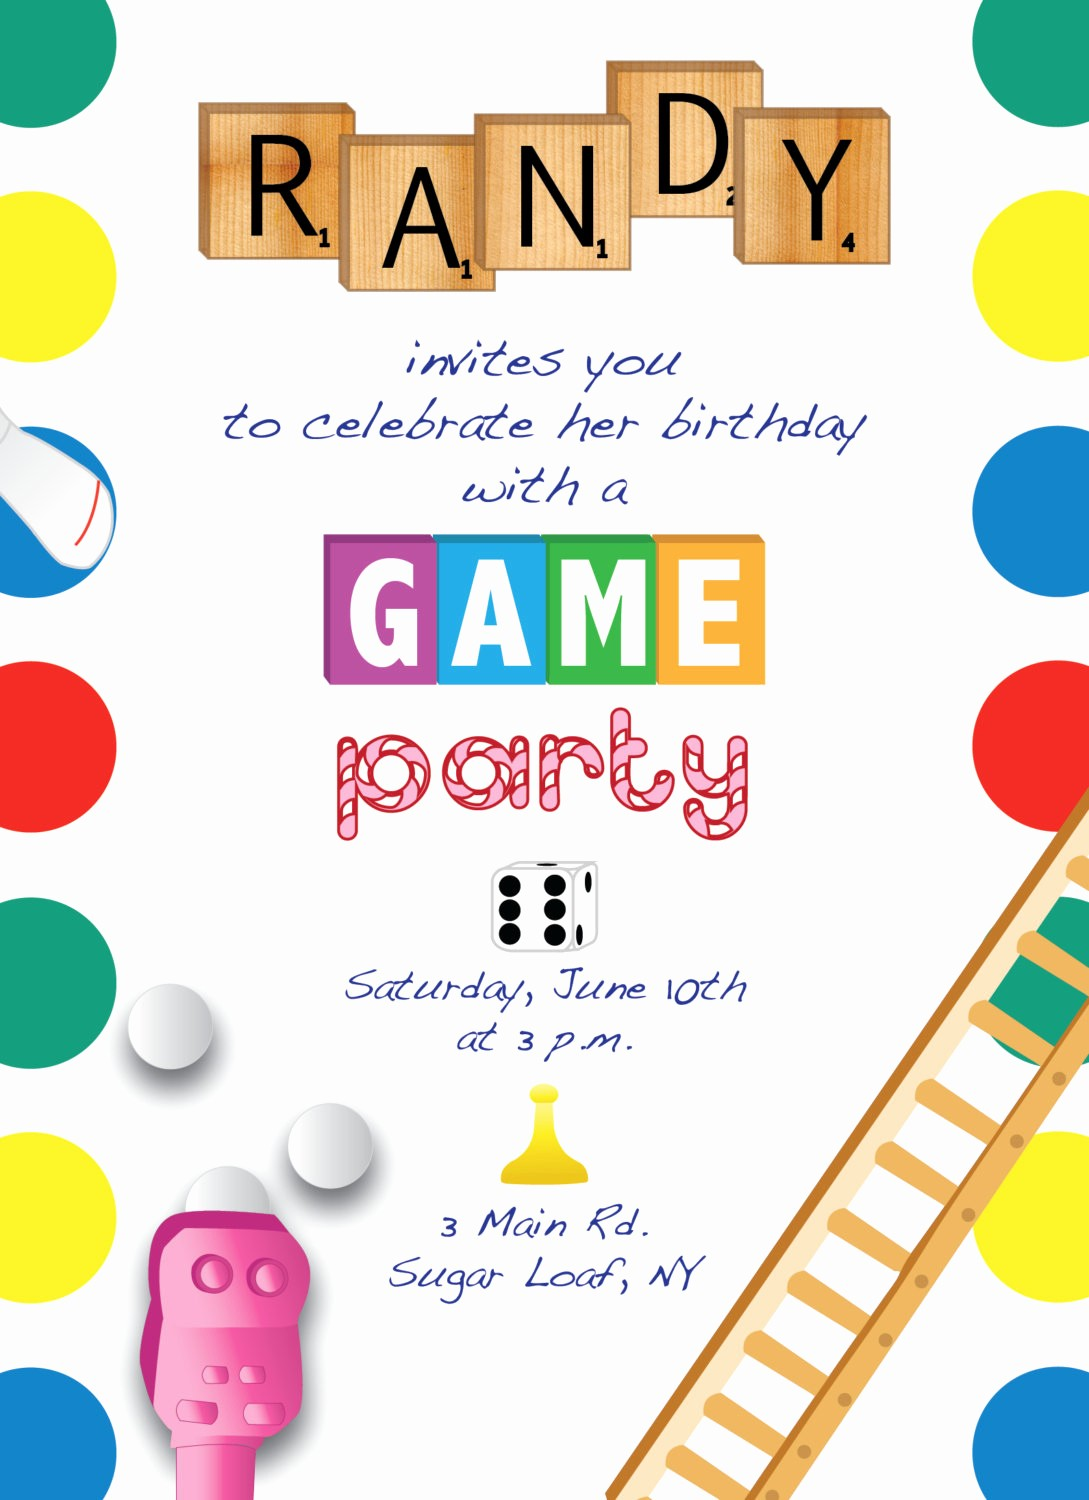 Board Game Night Flyer Template Best Of Printable Game Night Party Invitation